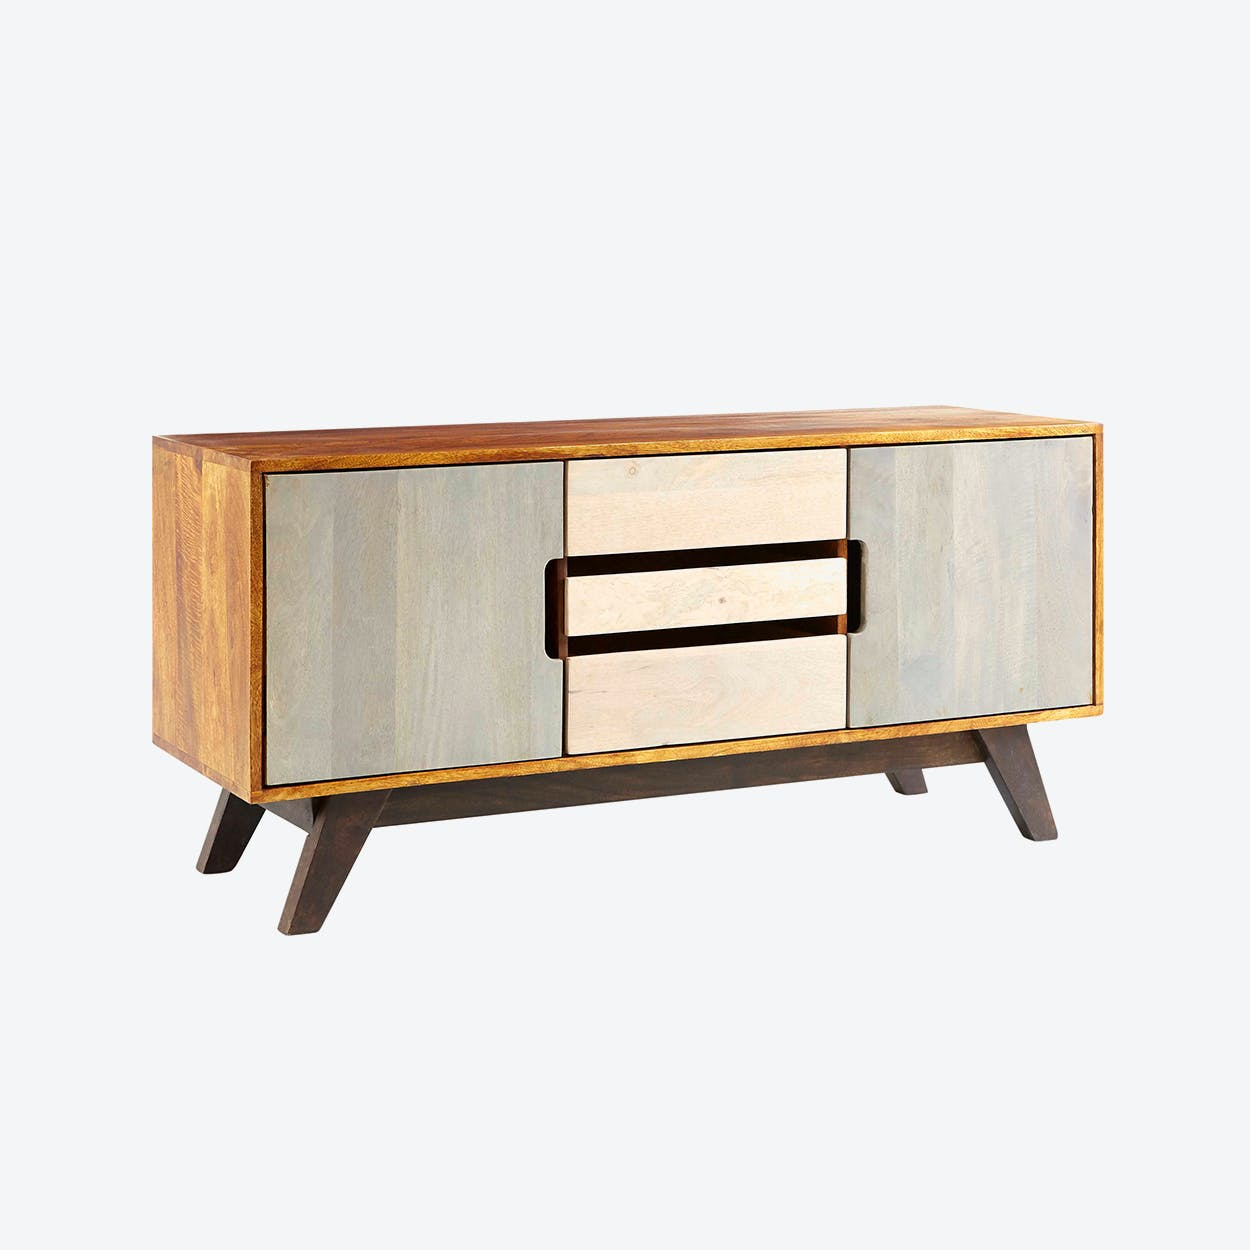 Mango Wood Plasma Unit/Sideboard